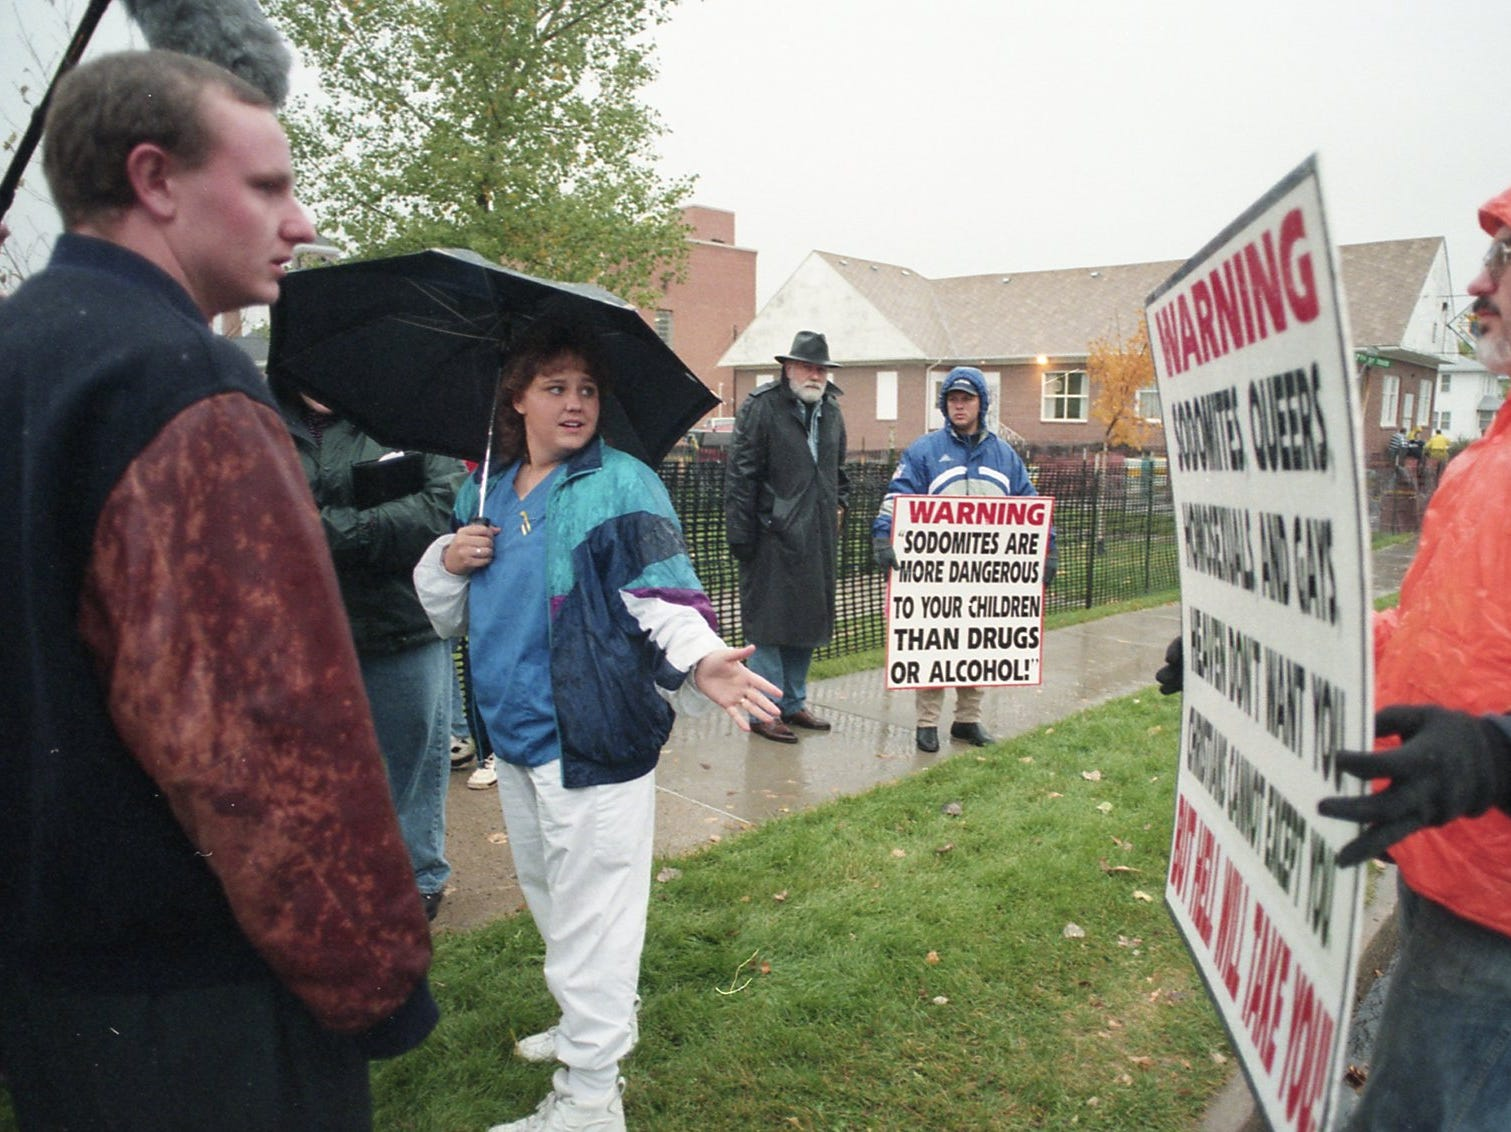 A protestor and a funeral attendee outside the church where Matthew Shepard's funeral was held.